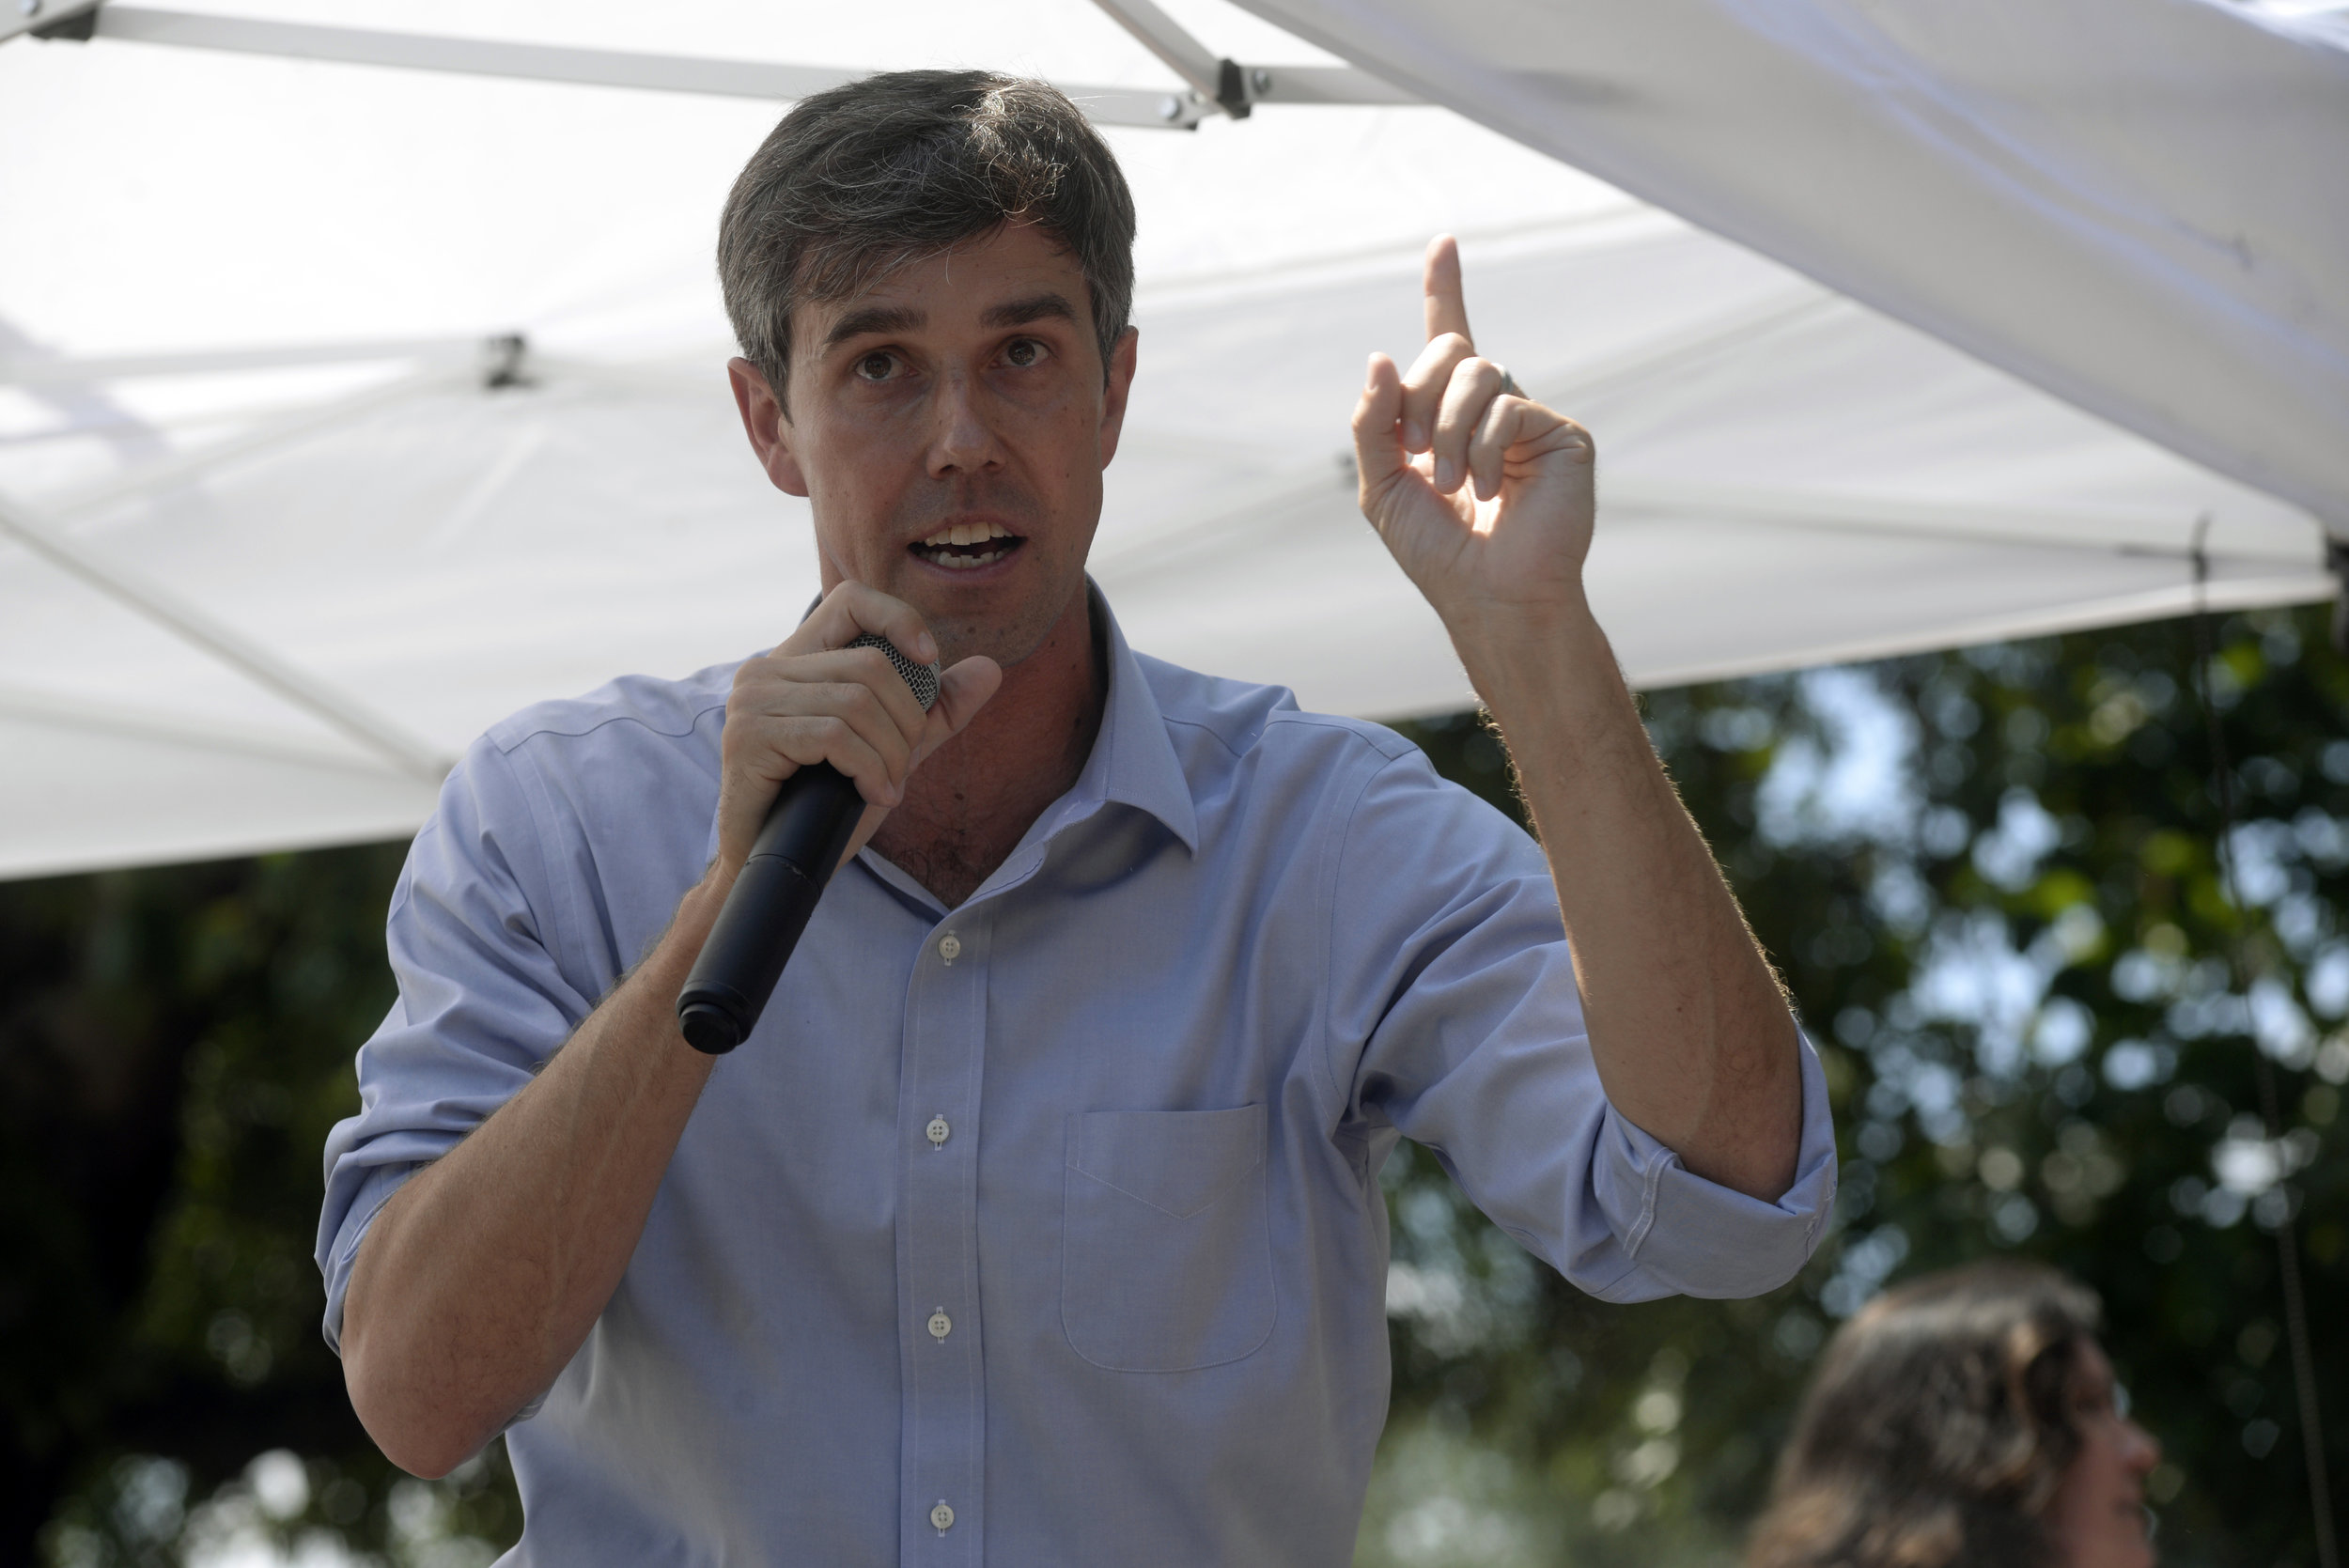 Senate candidate Beto O'Rourke speaks to Denton County residents Saturday during a town hall event at Backyard on Bell in Denton, Texas. Jake King/DRC